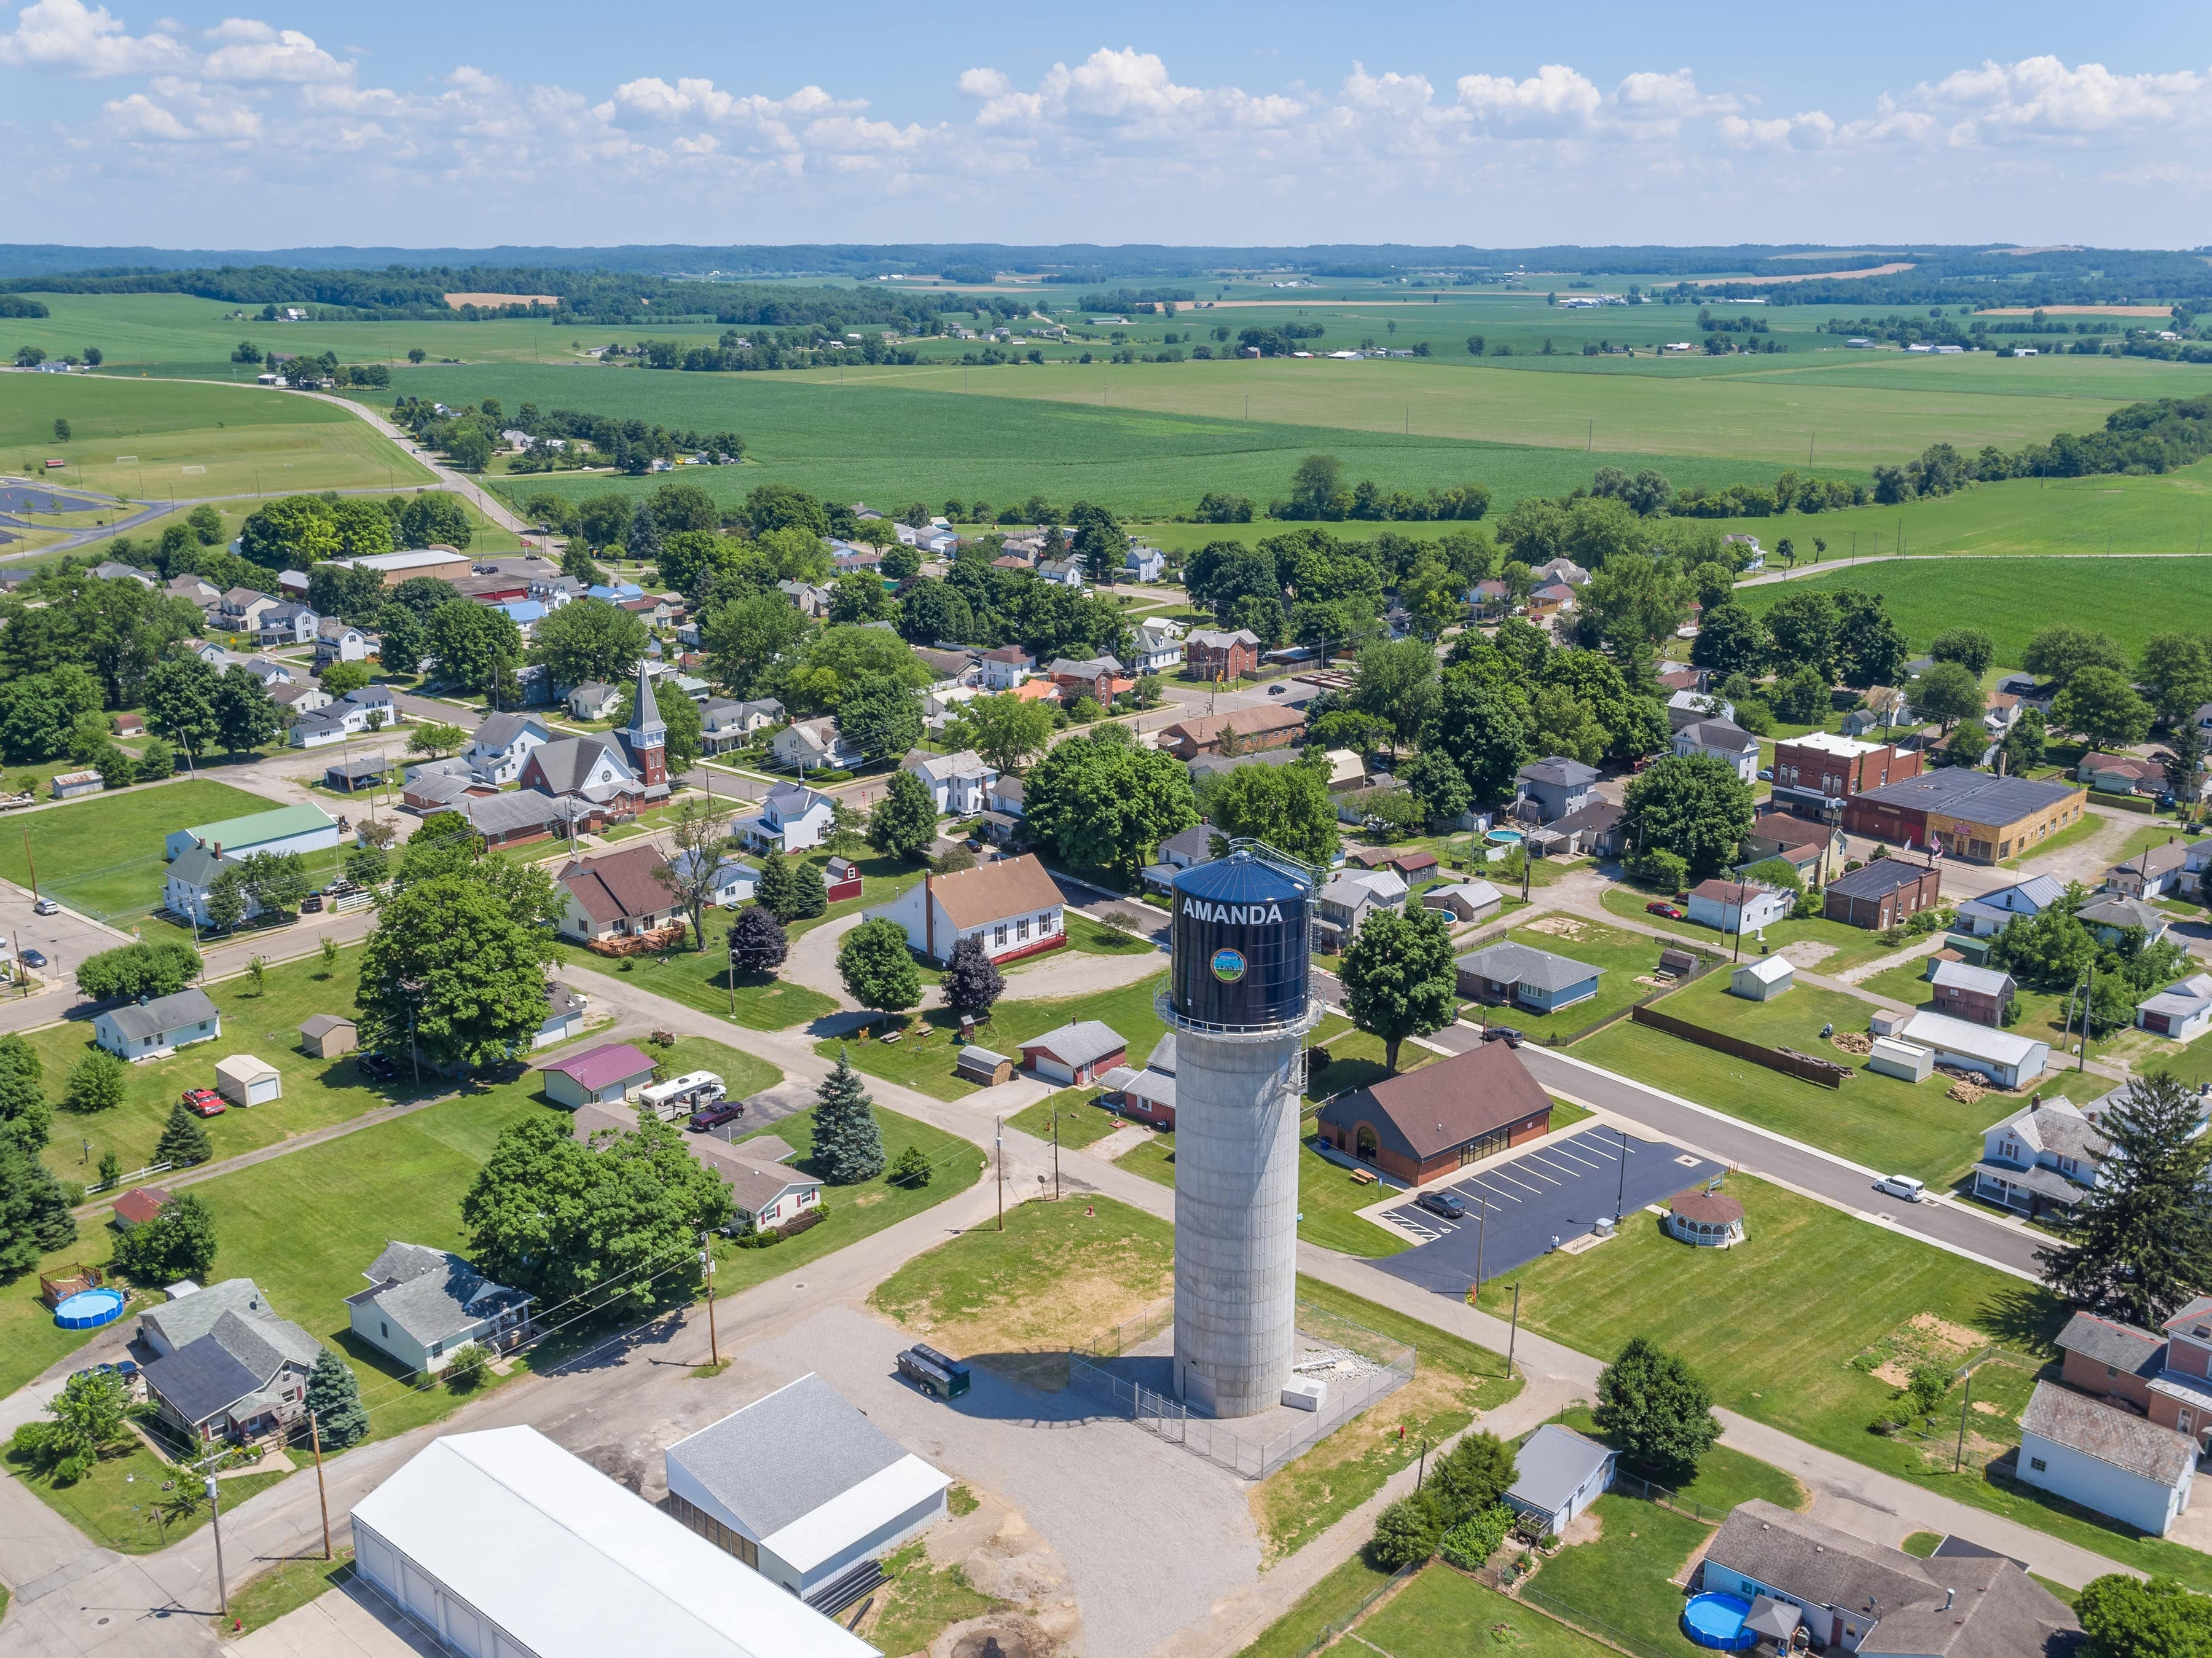 Beautiful drone perspective of the town of Amanda, Ohio